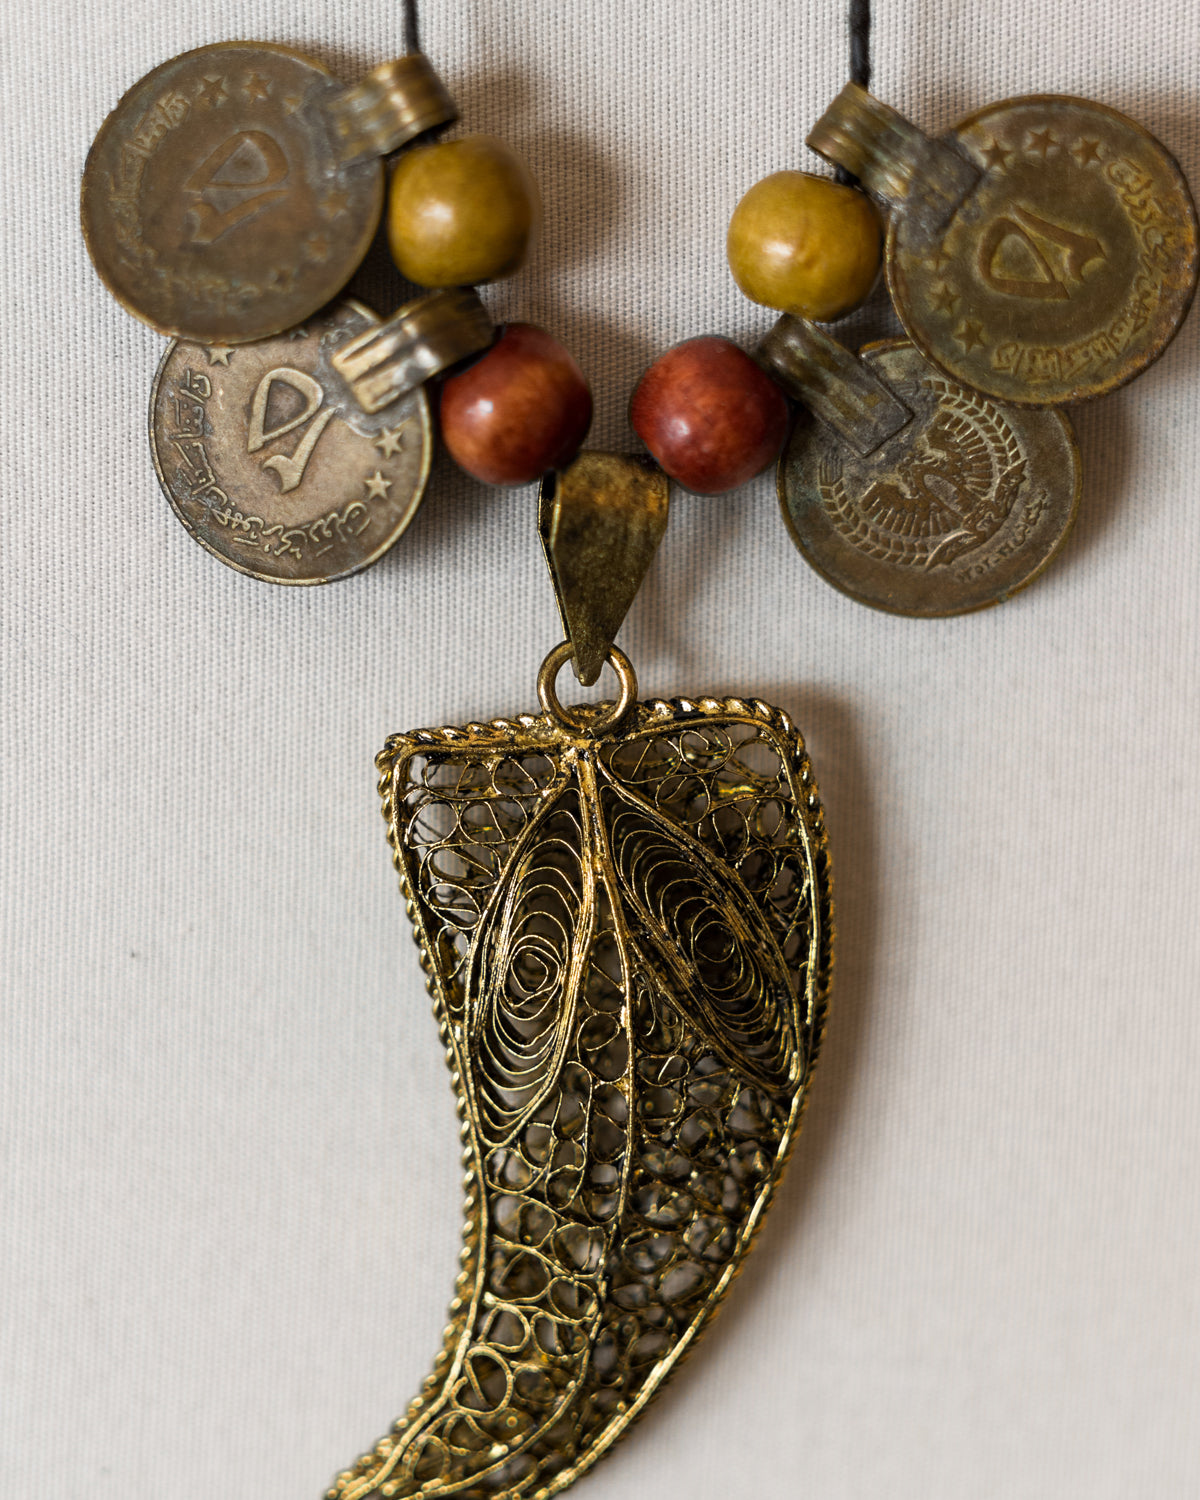 Intricate Tooth (Coin)